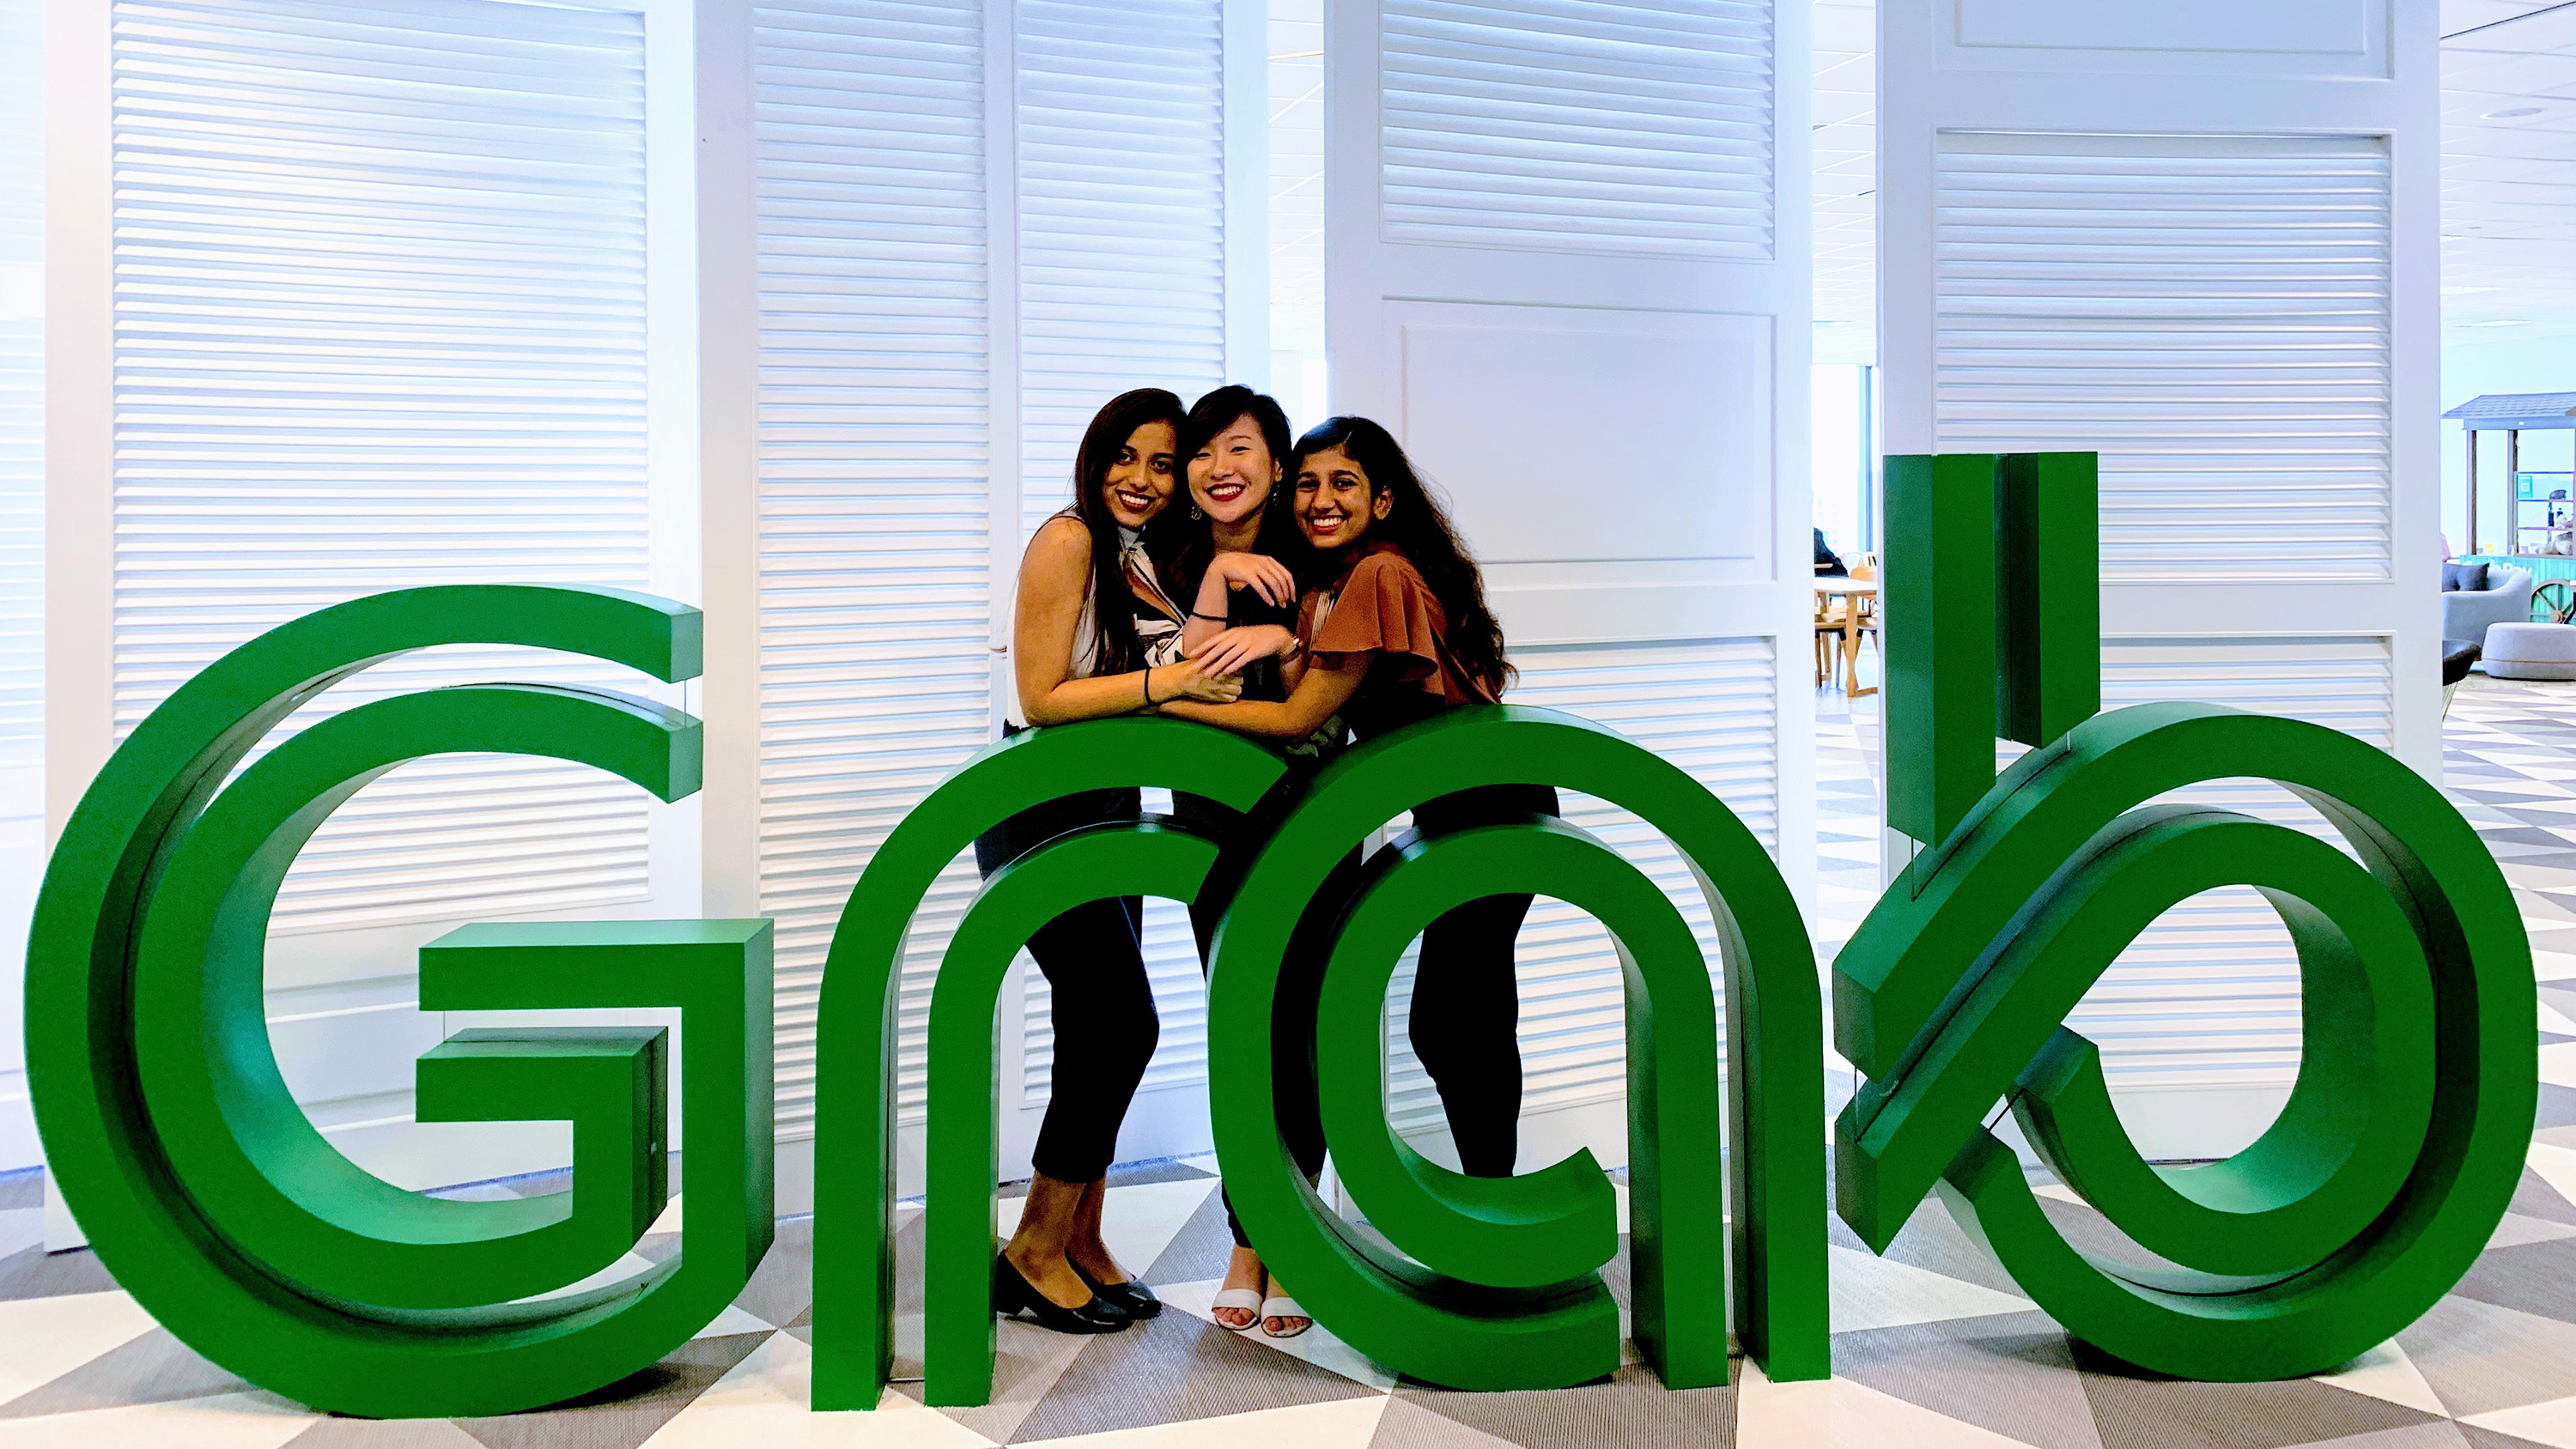 5 Reasons To Grab an Internship at Grab